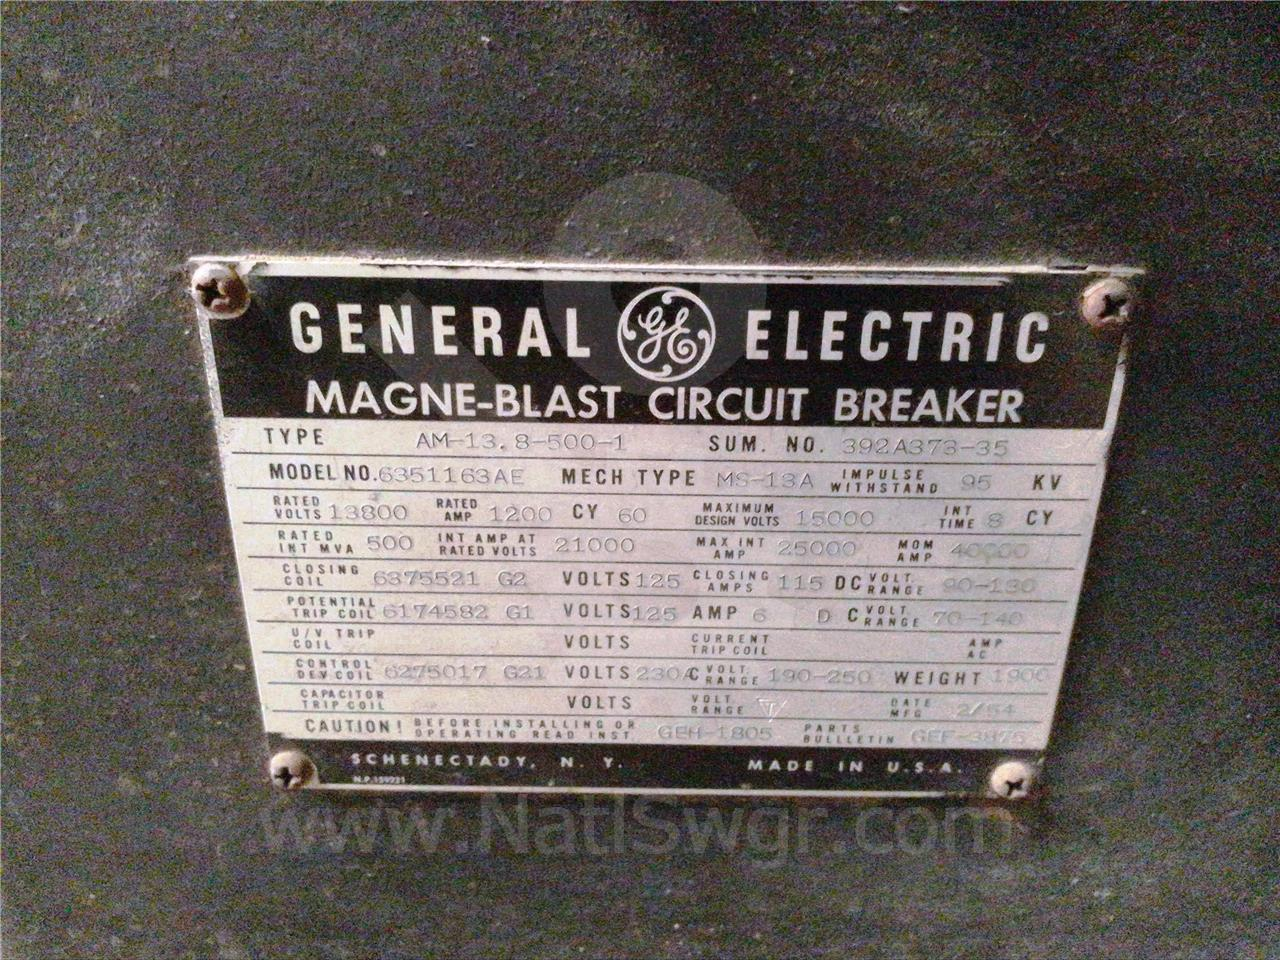 General Electric 1200A GE AM-13.8-500-3 MS-13A (AM 13.8-500)